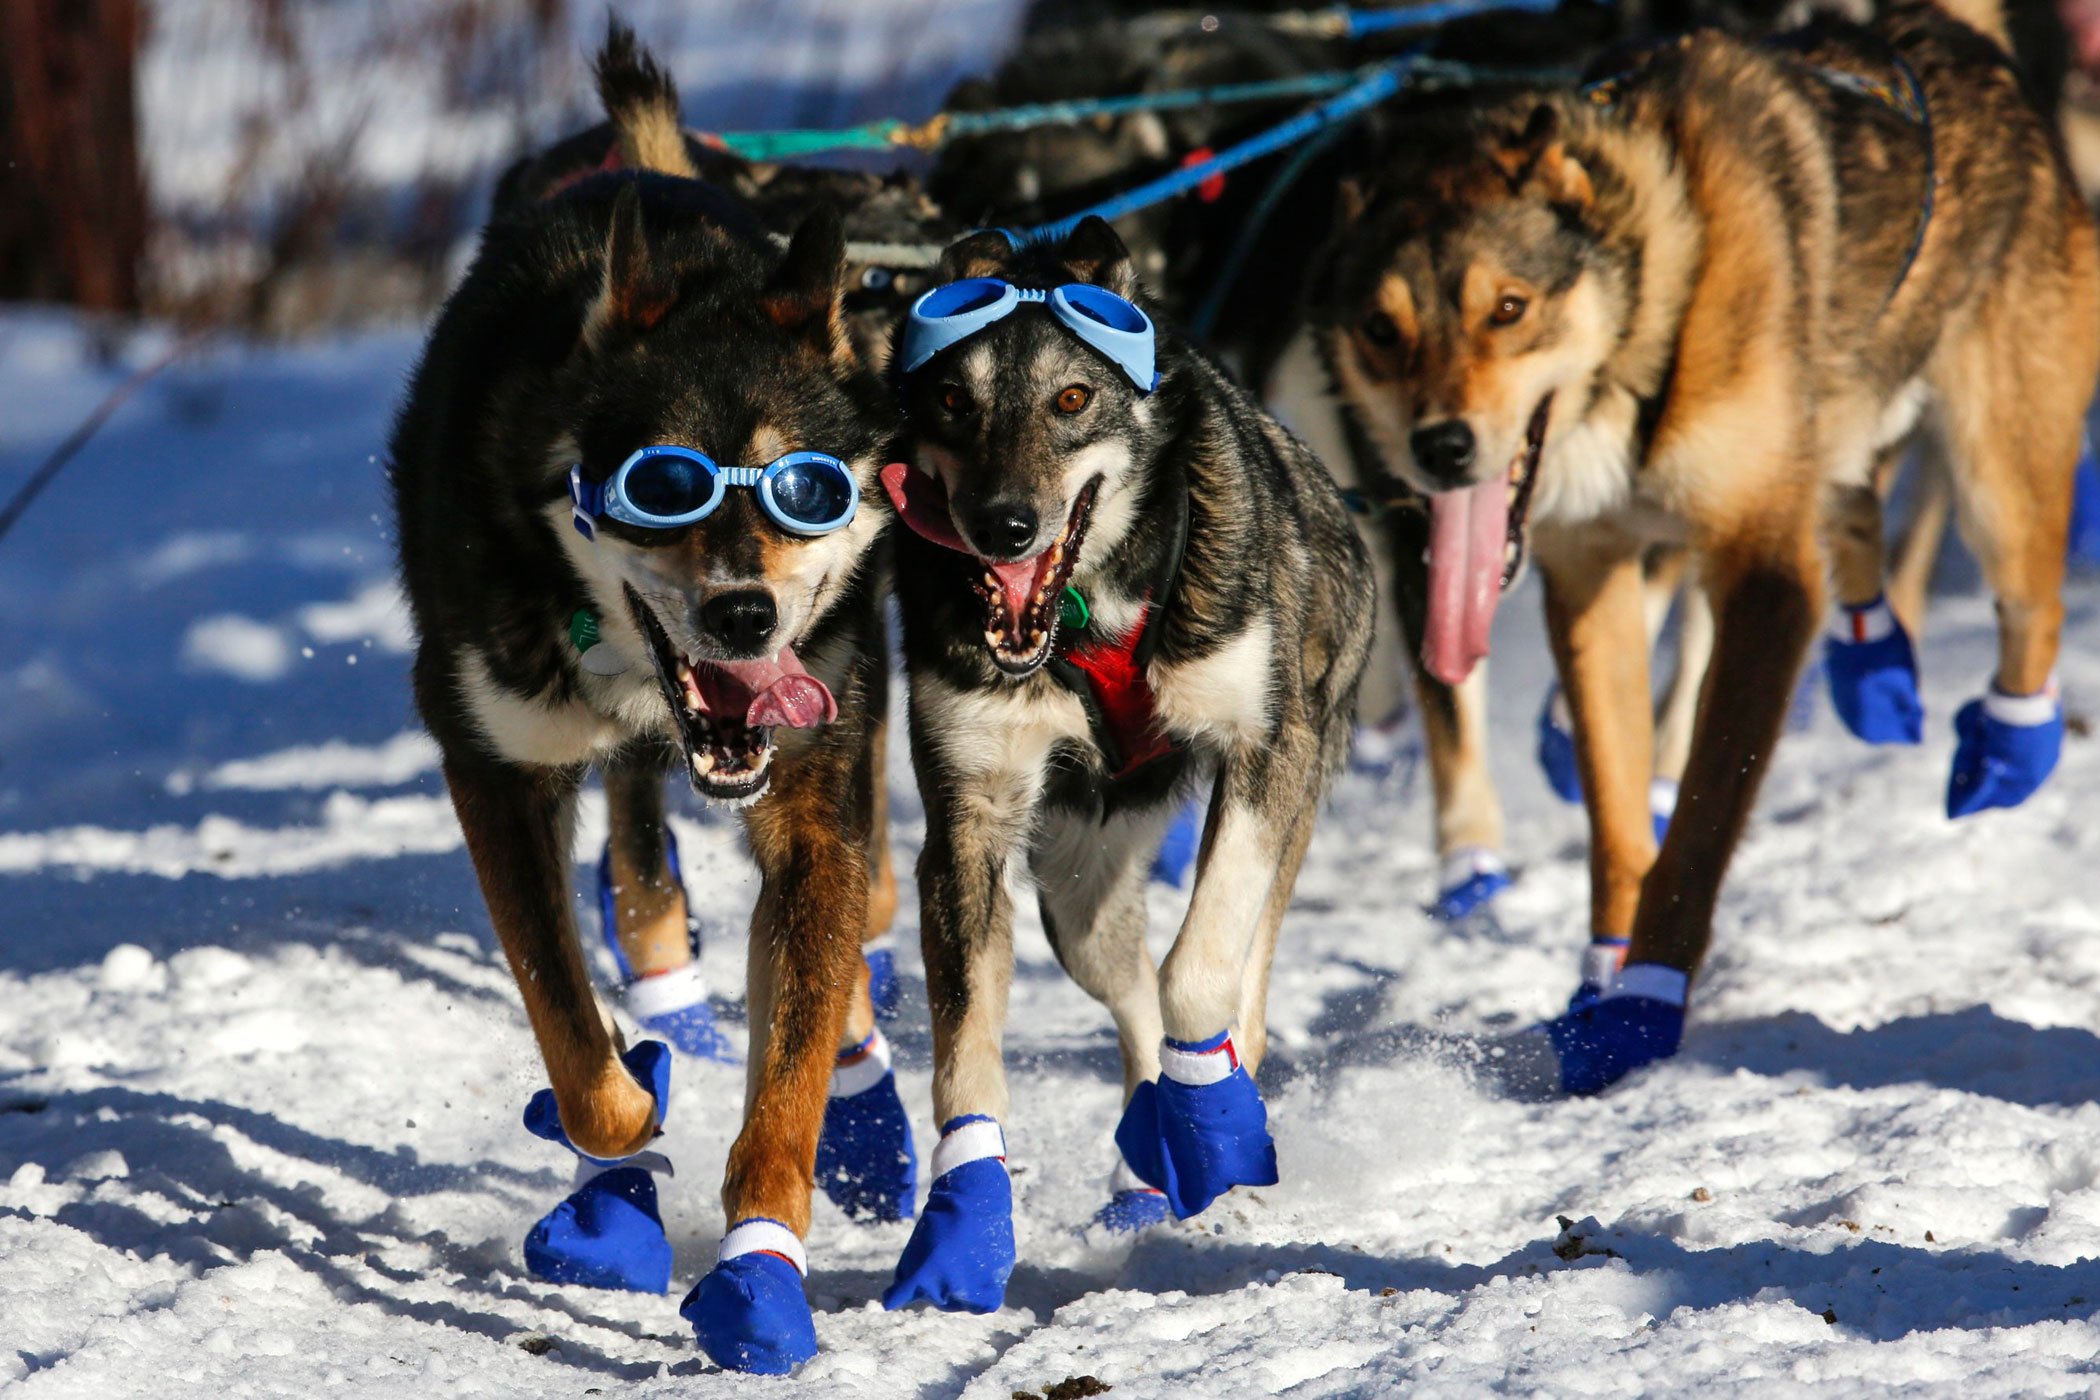 Cody Strathe's team leaves the restart of the Iditarod Trail Sled Dog Race in Willow, Alaska on March 6.